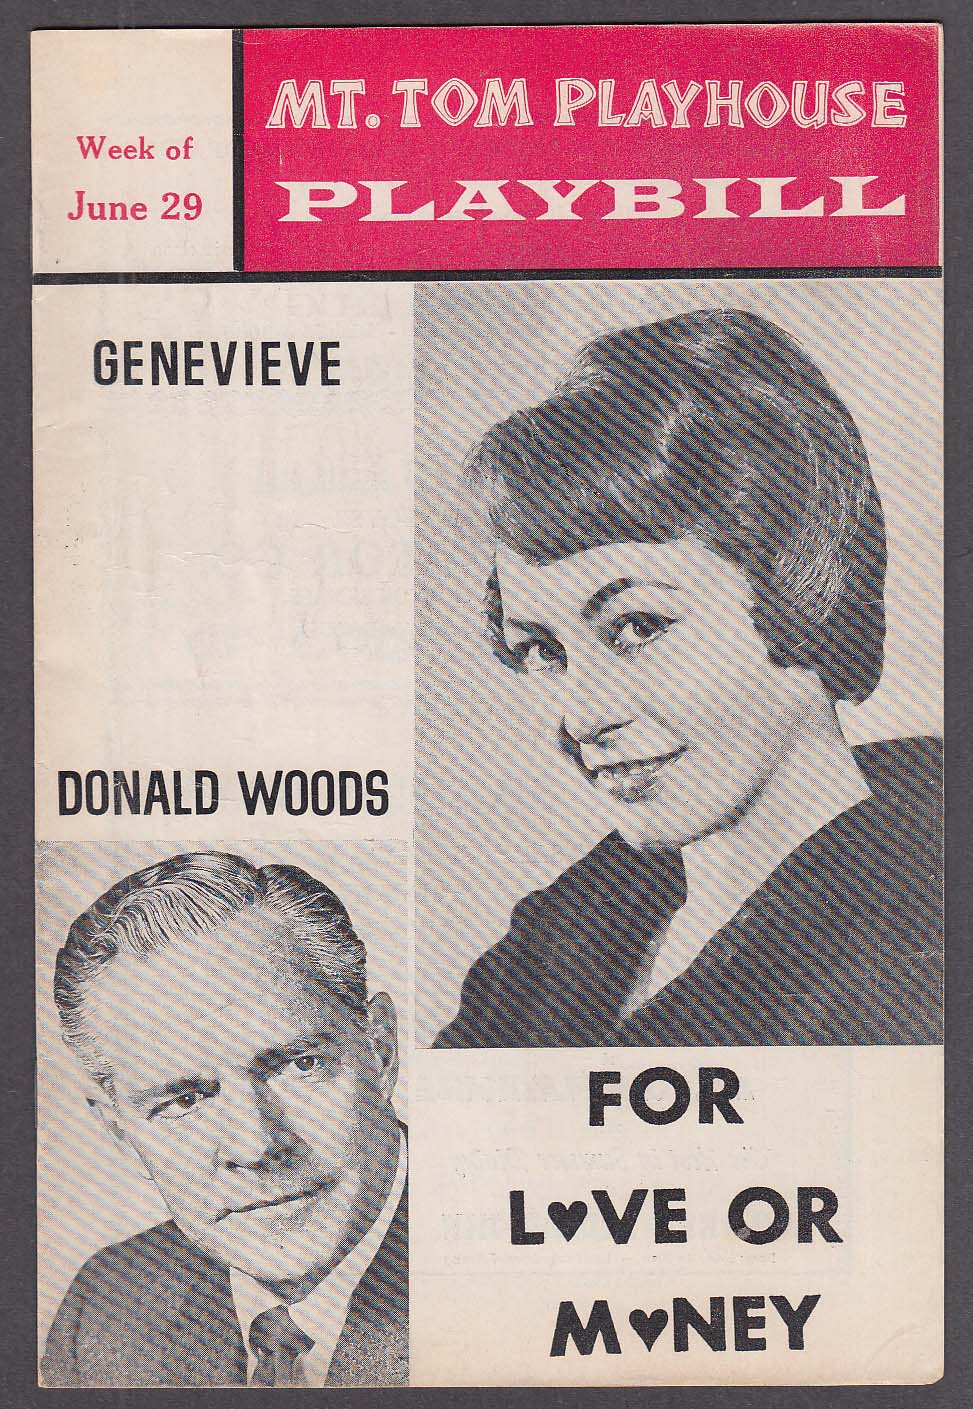 Genvieve & Donald Woods in For Love or Money Mt Tom Playhouse Playbill 6/29 1964